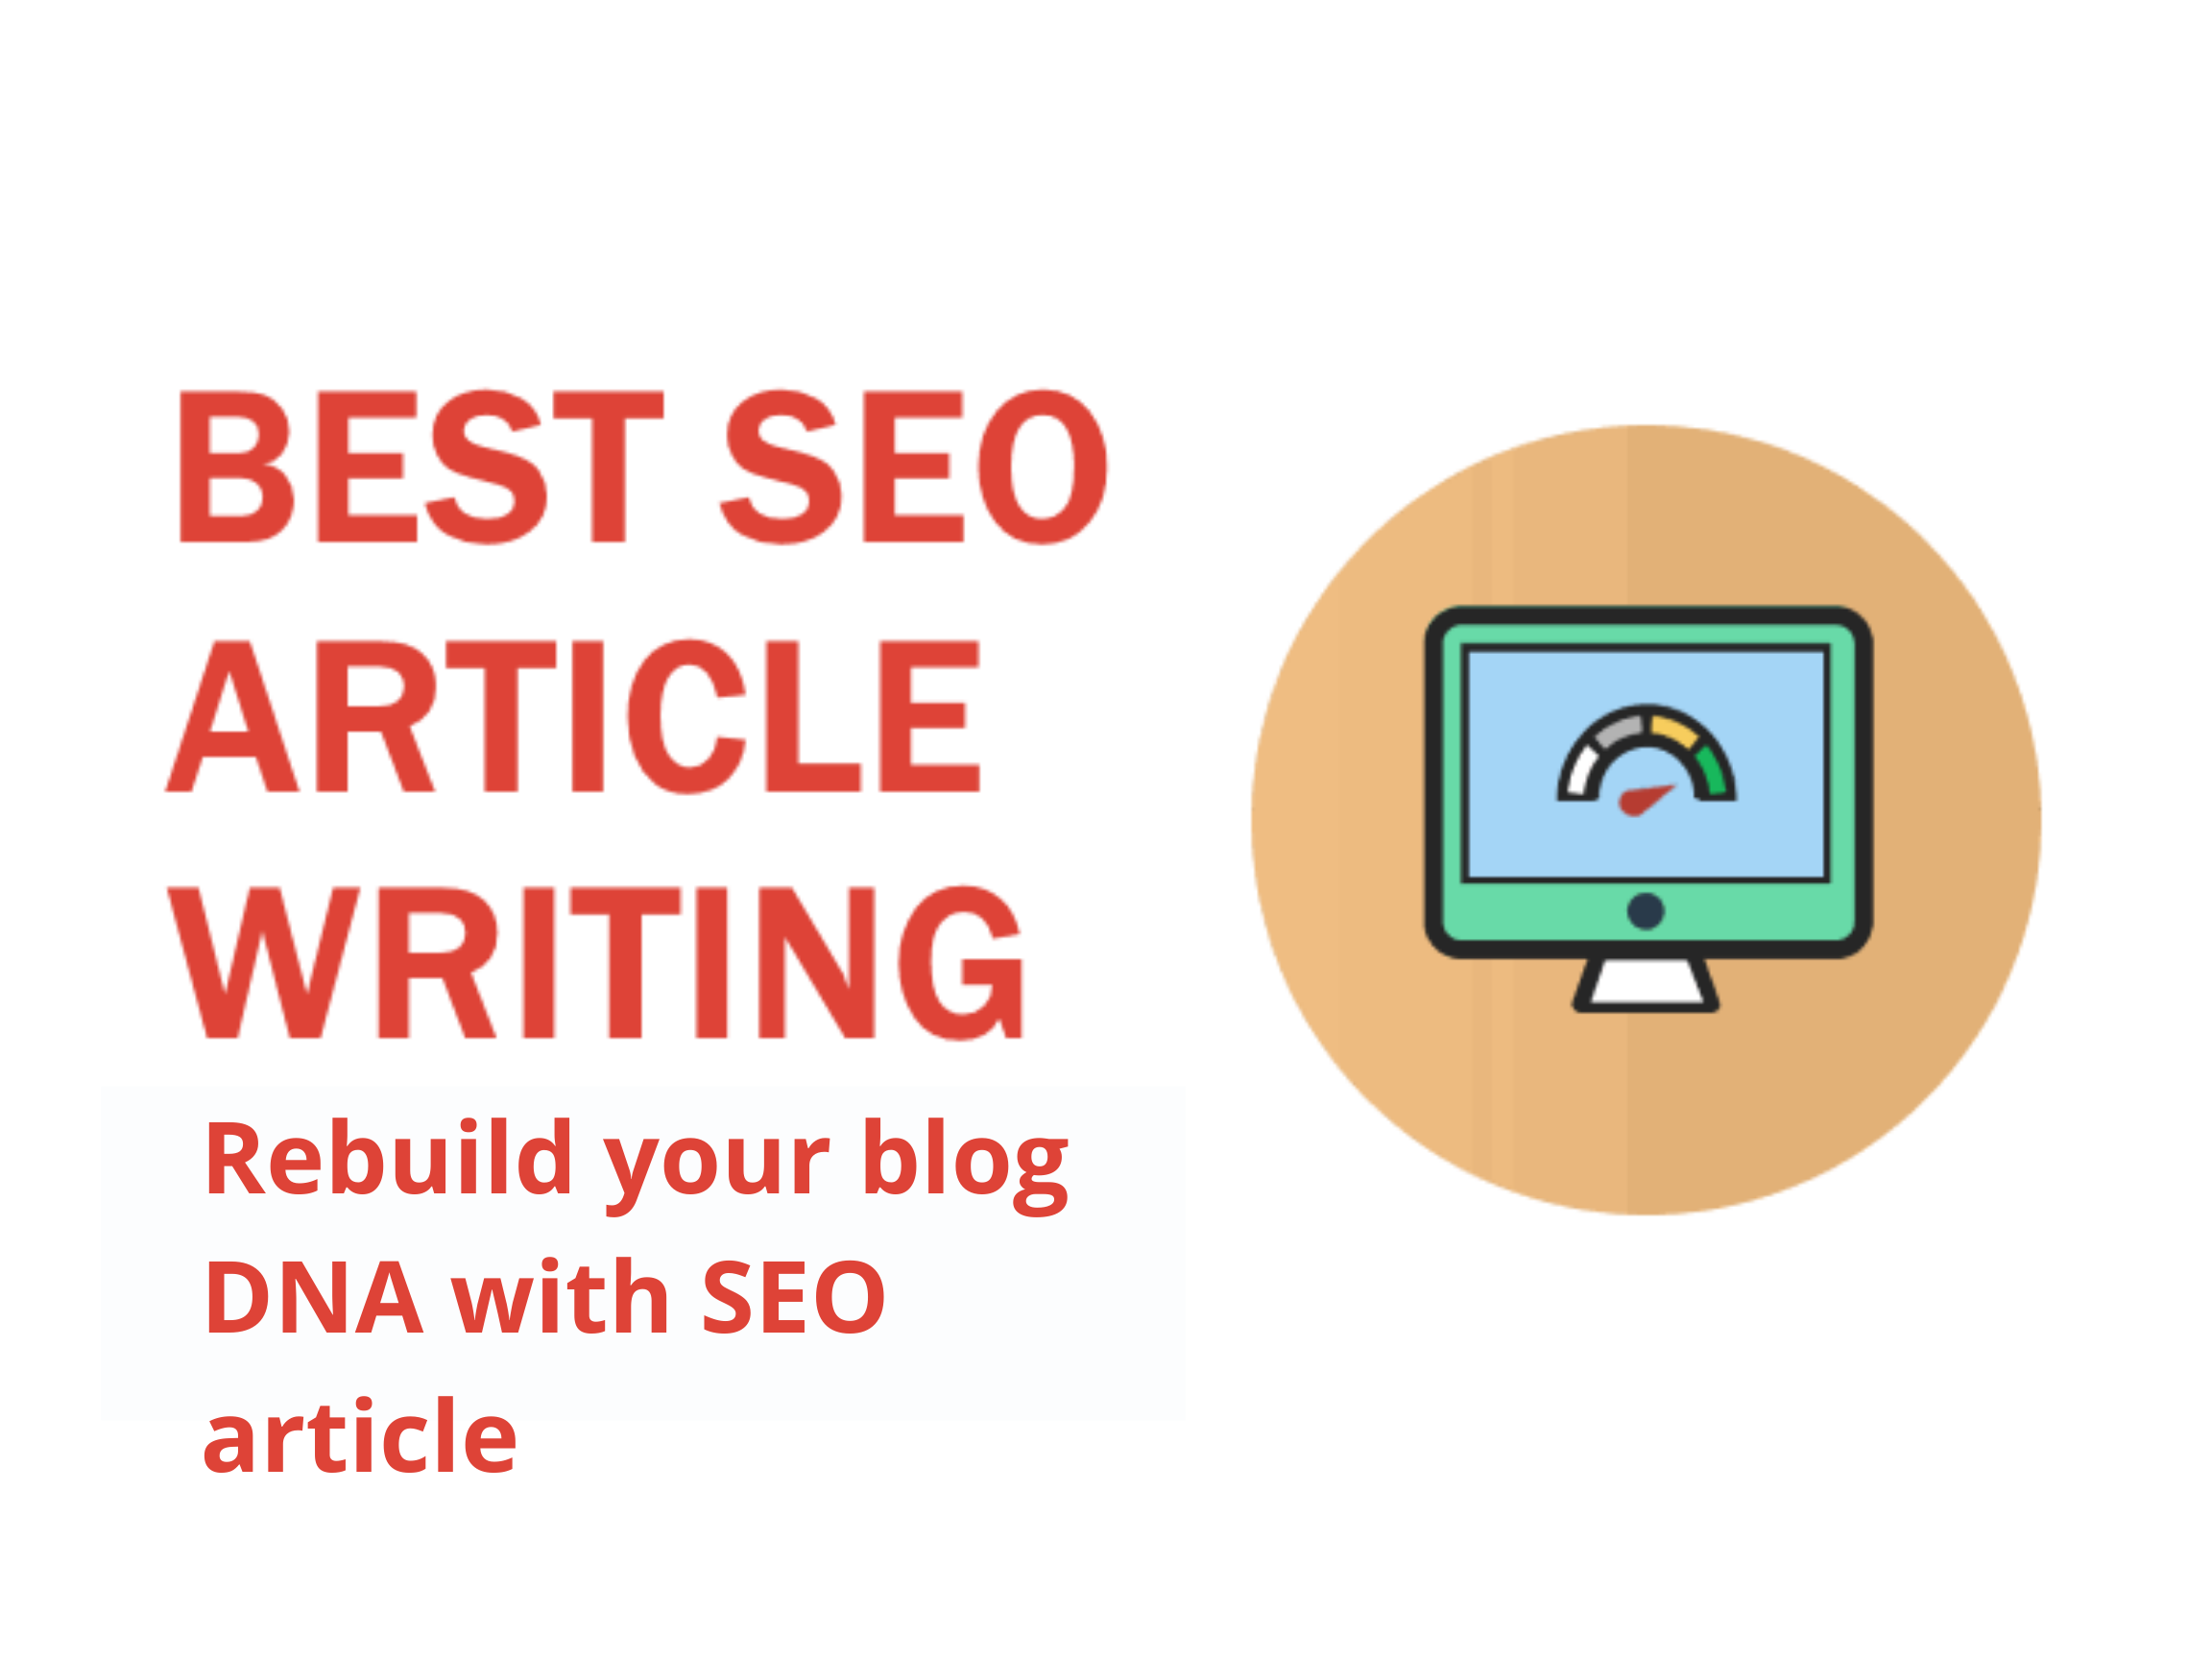 Write uniqe and SEO optimize article up to 600 - 1000 words